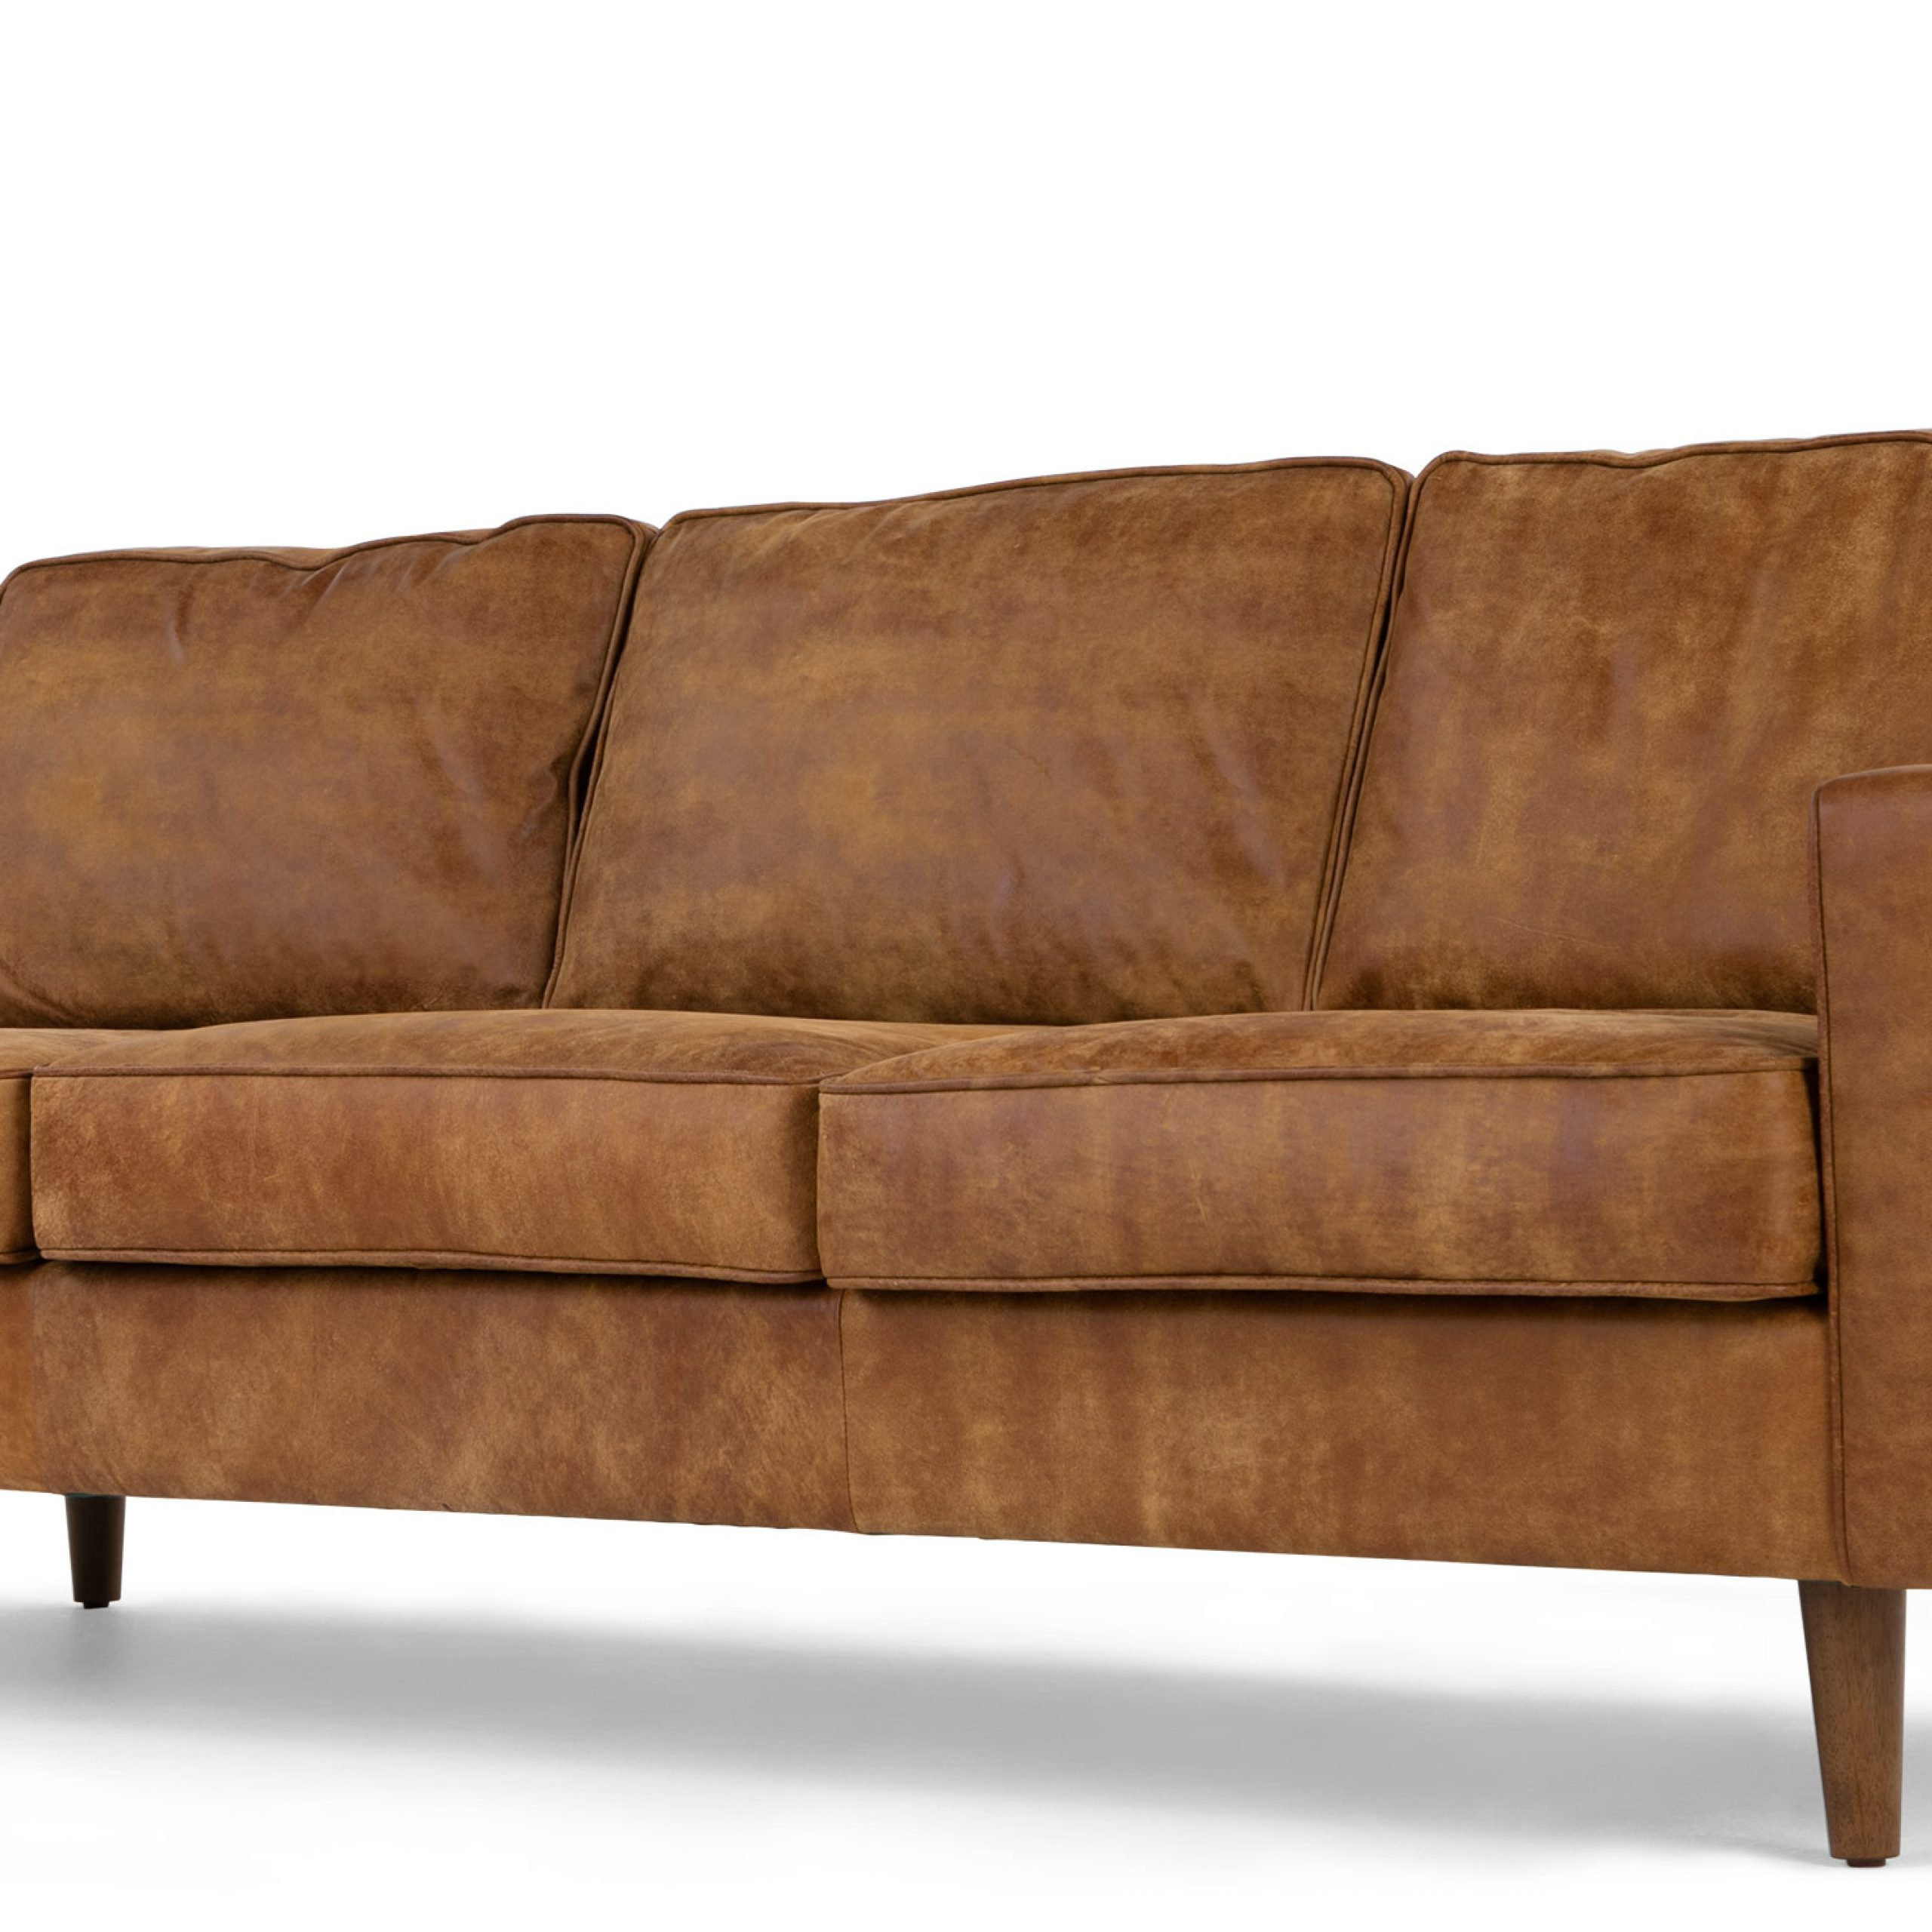 Dallas 3 Seater Sofa, Outback Tan Premium Leather | Made With Regard To 3 Seater Leather Sofas (View 11 of 15)